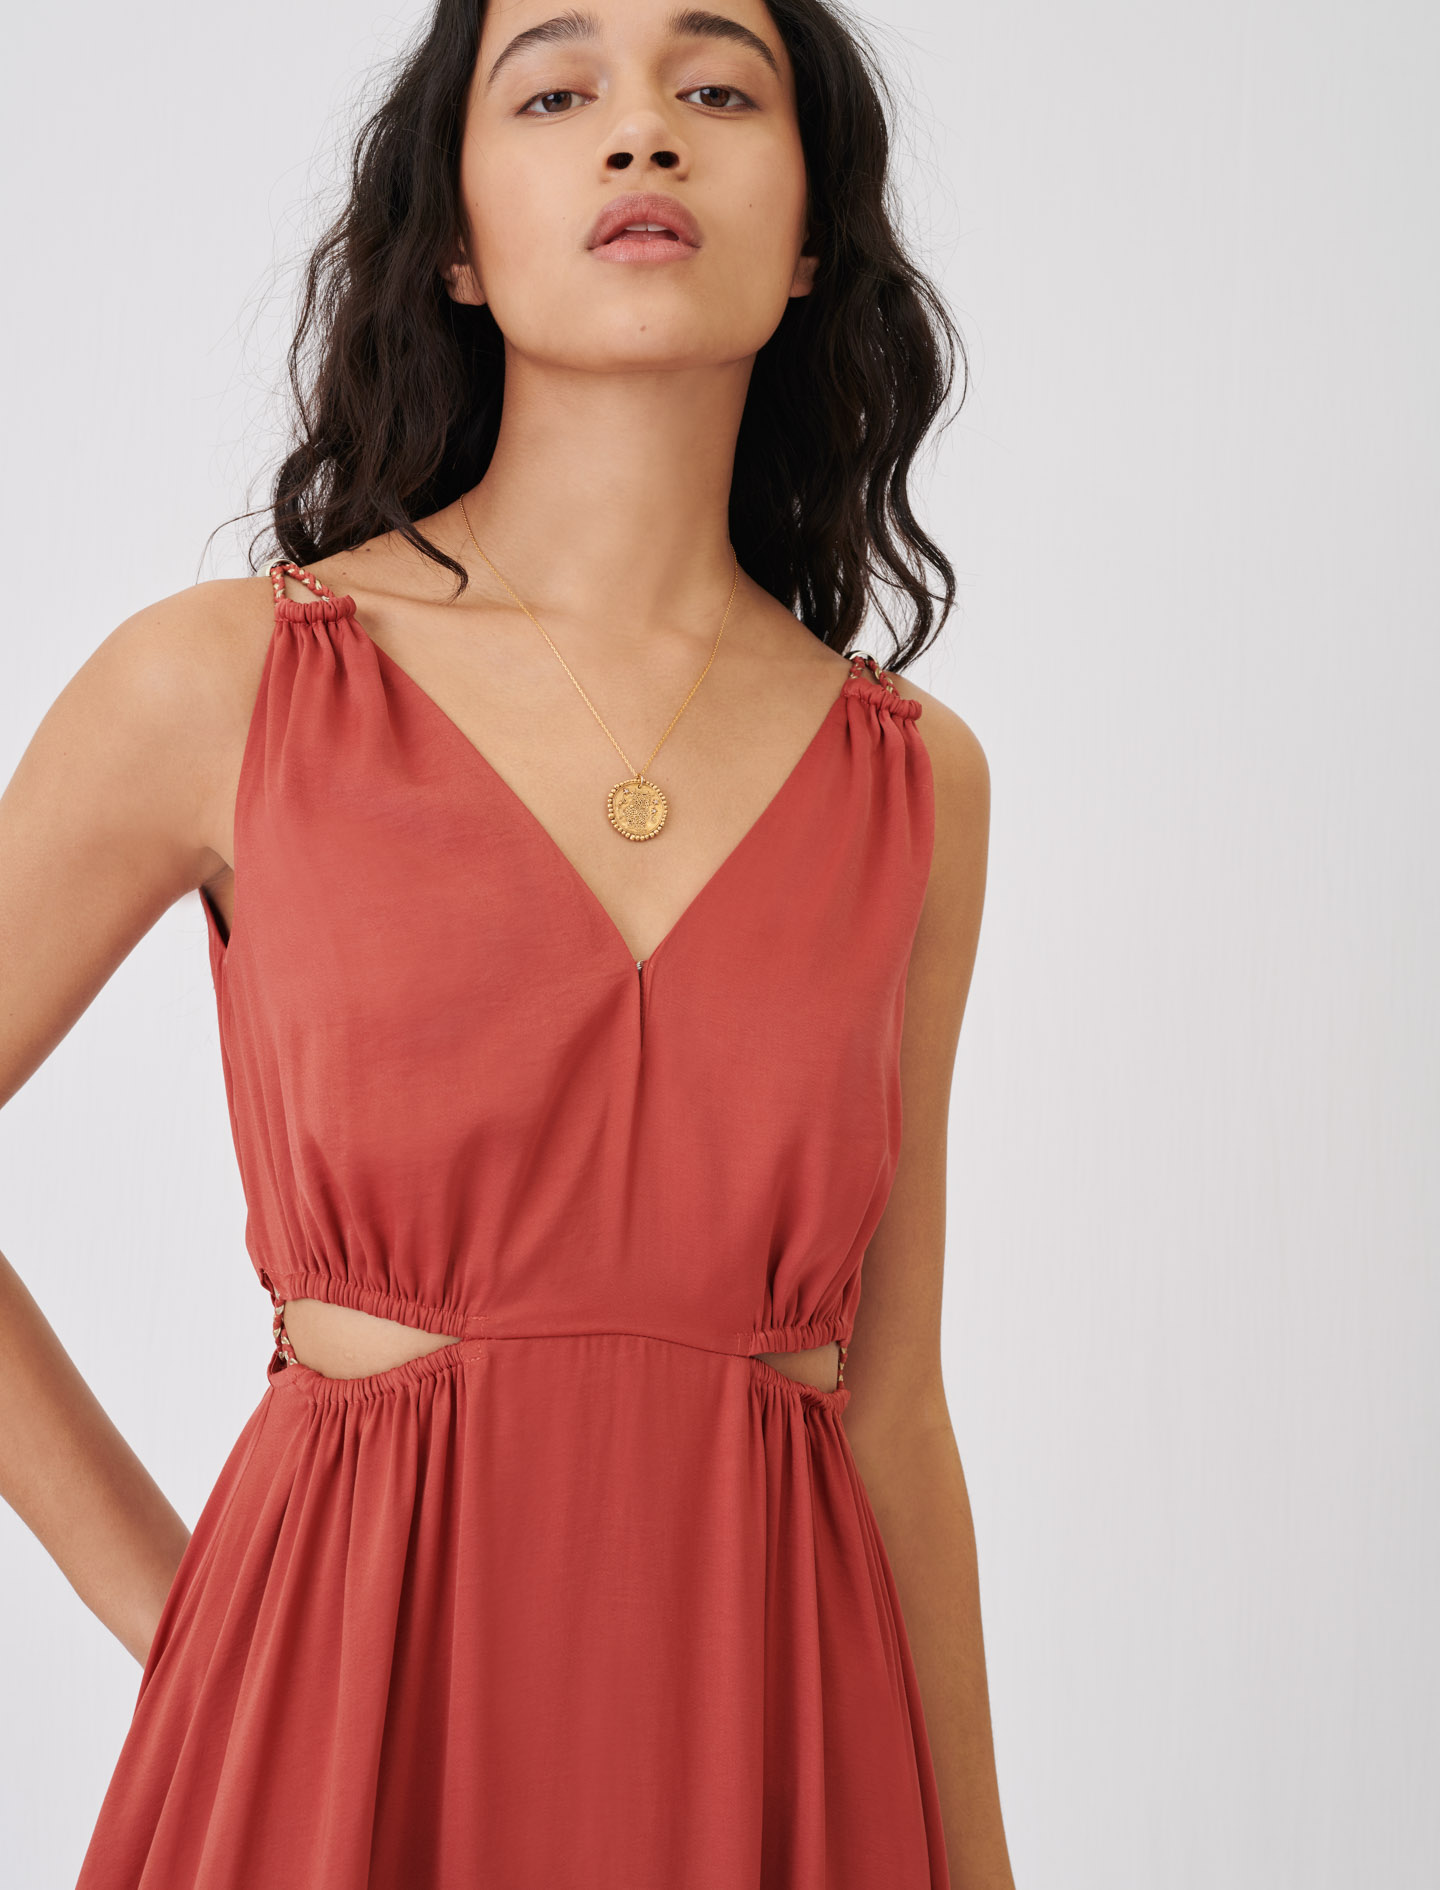 Satin dress with braided straps - Terracotta